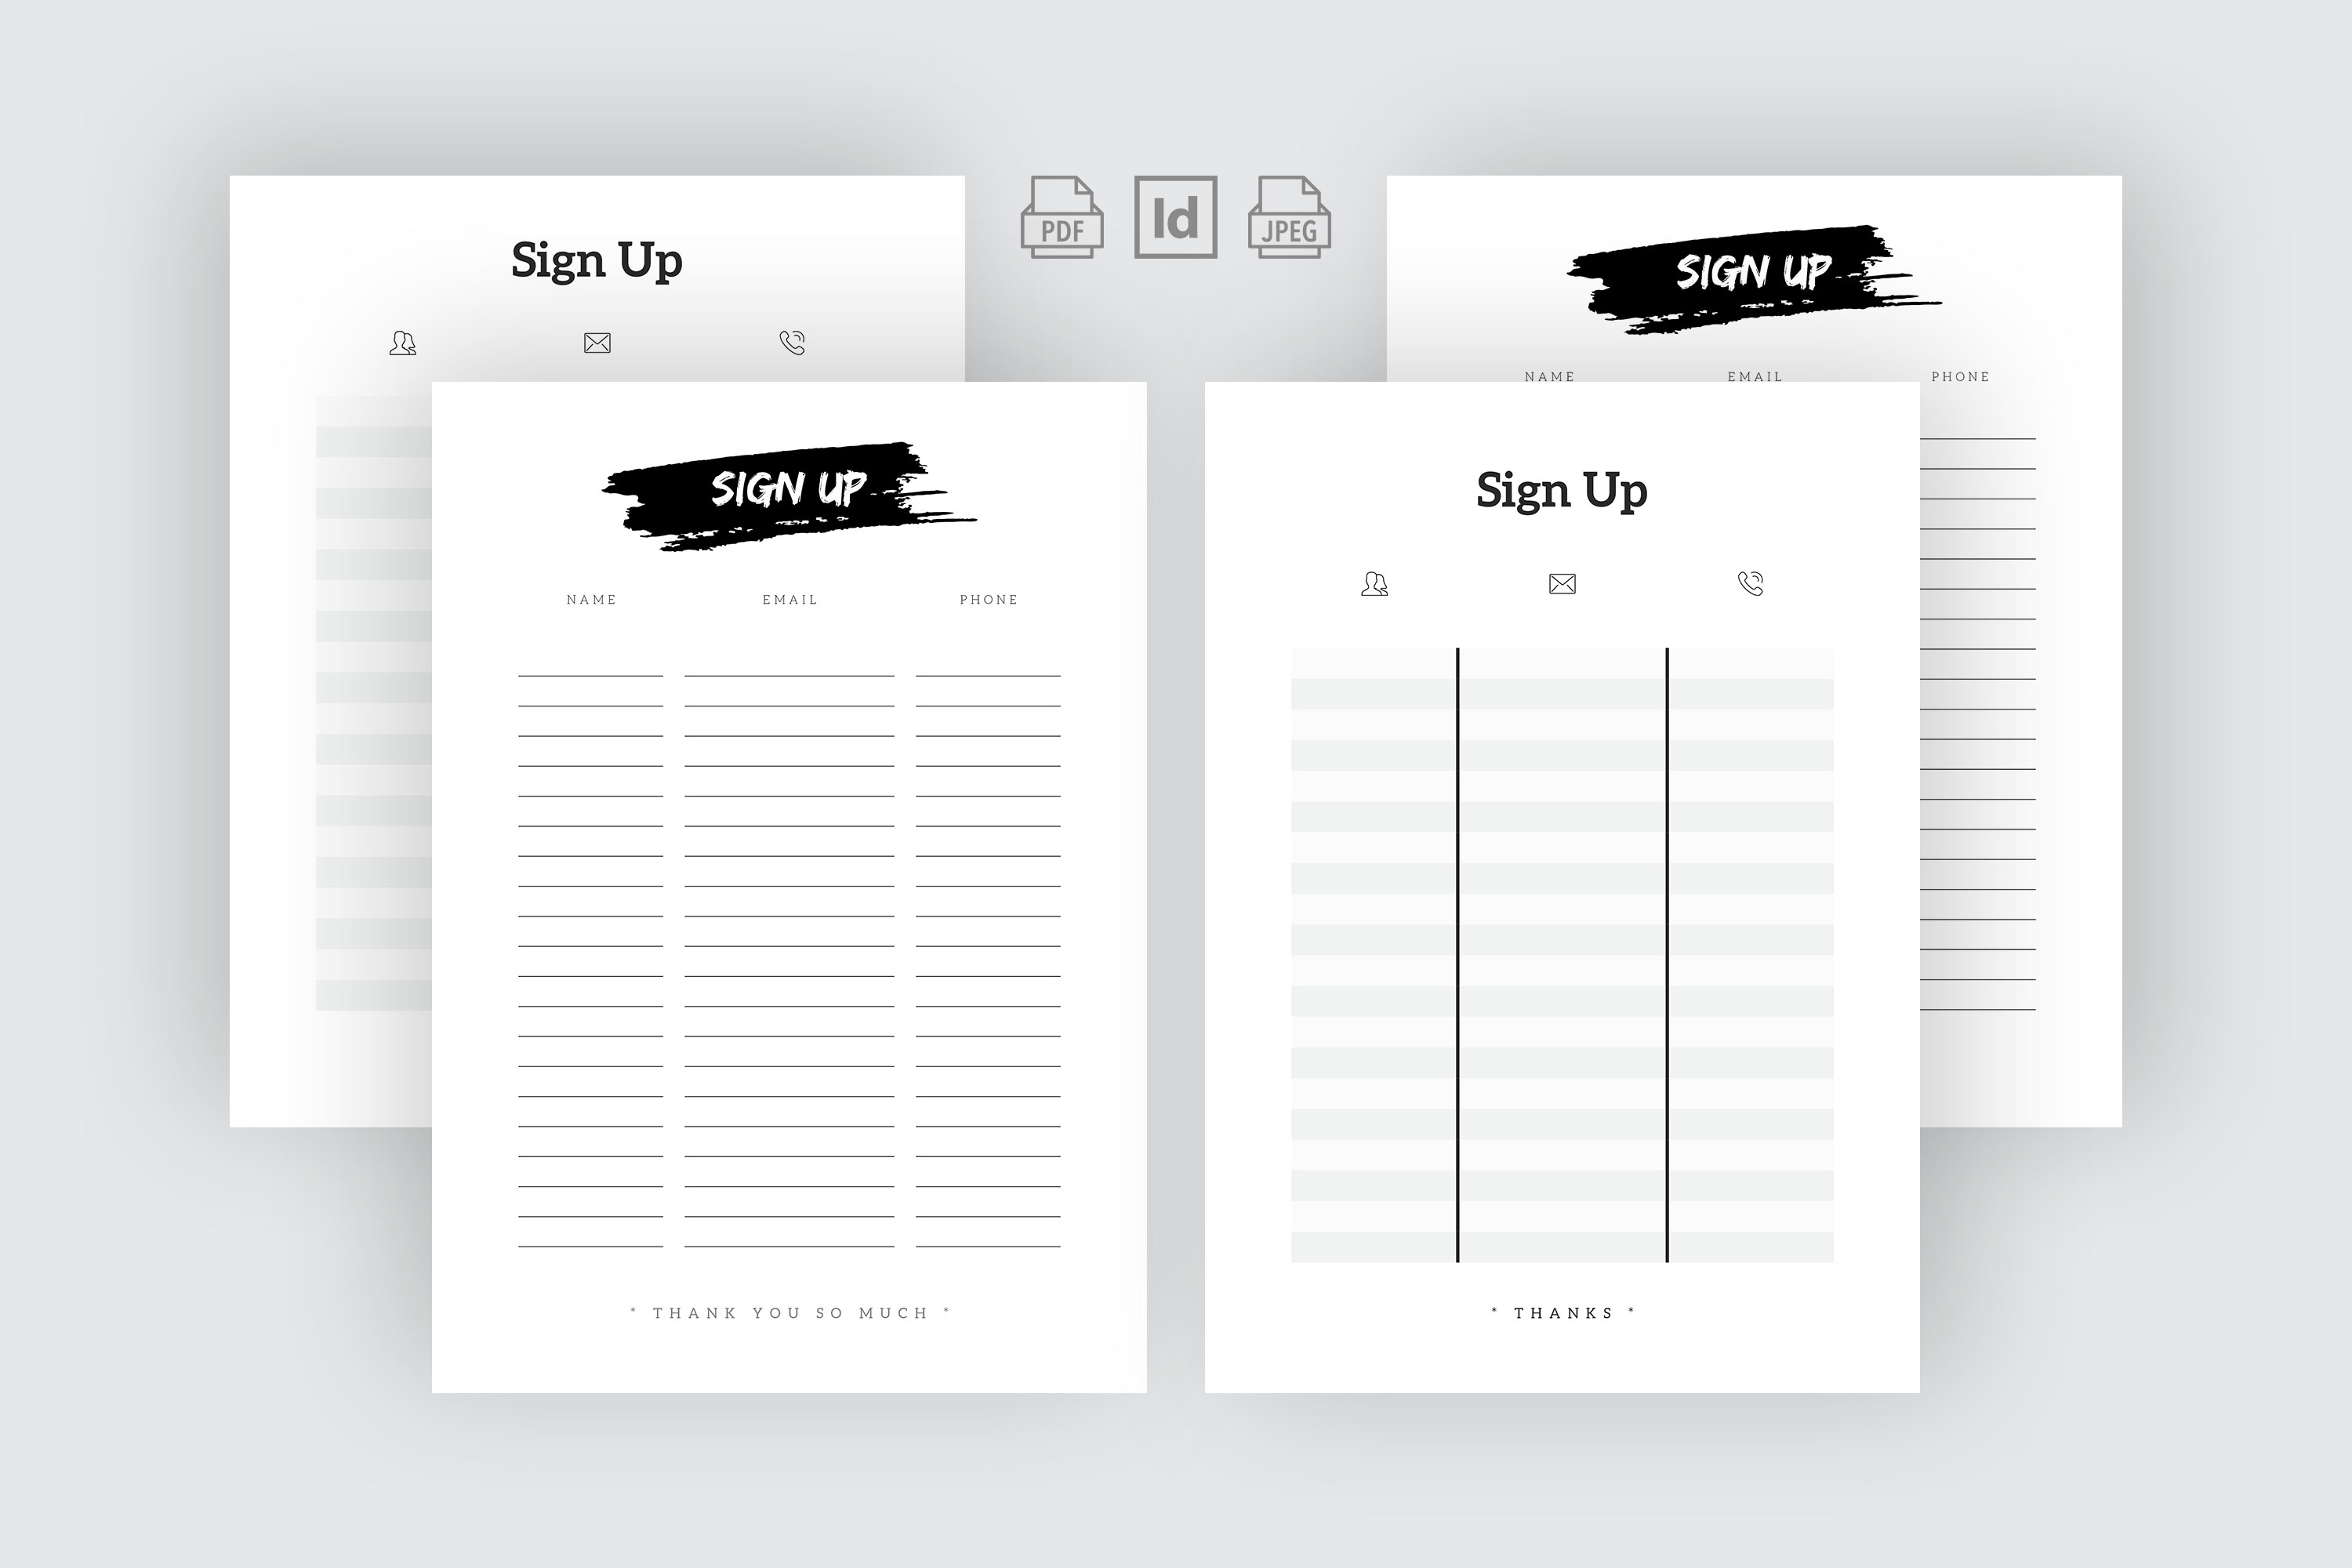 Sign Up Template example image 1